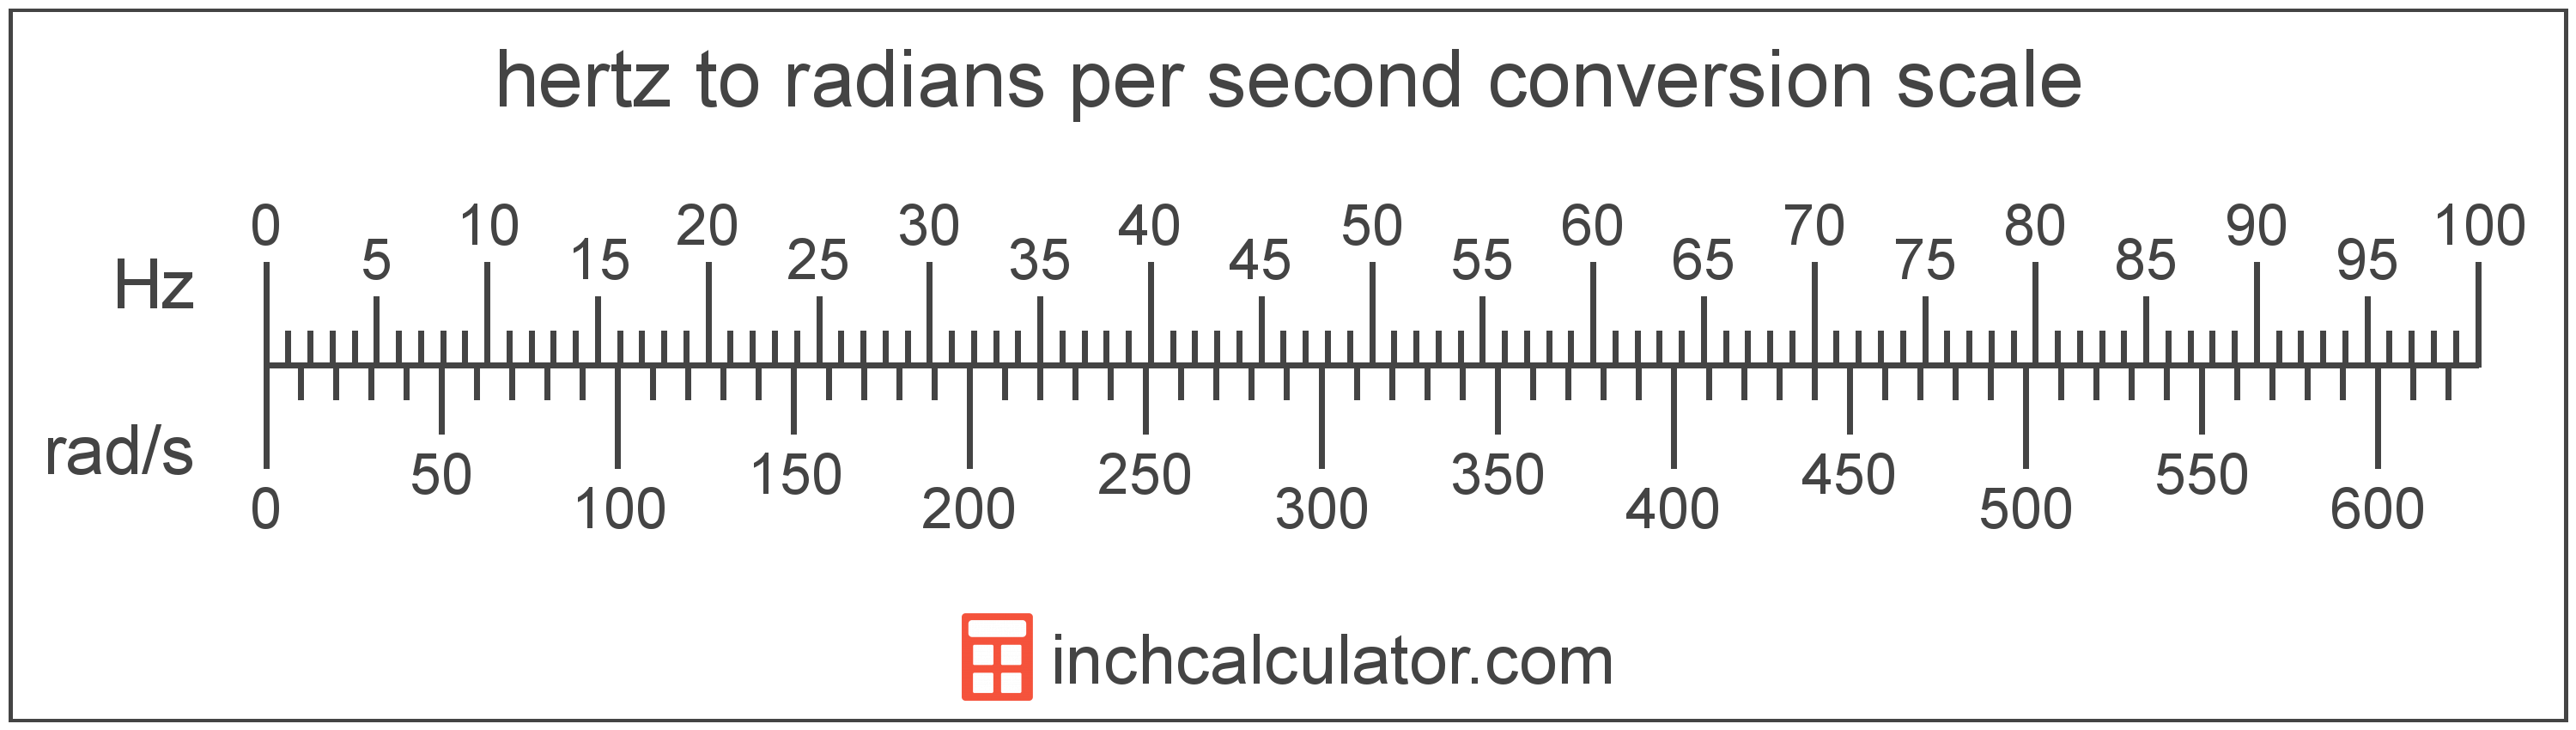 conversion scale showing radians per second and equivalent hertz frequency values